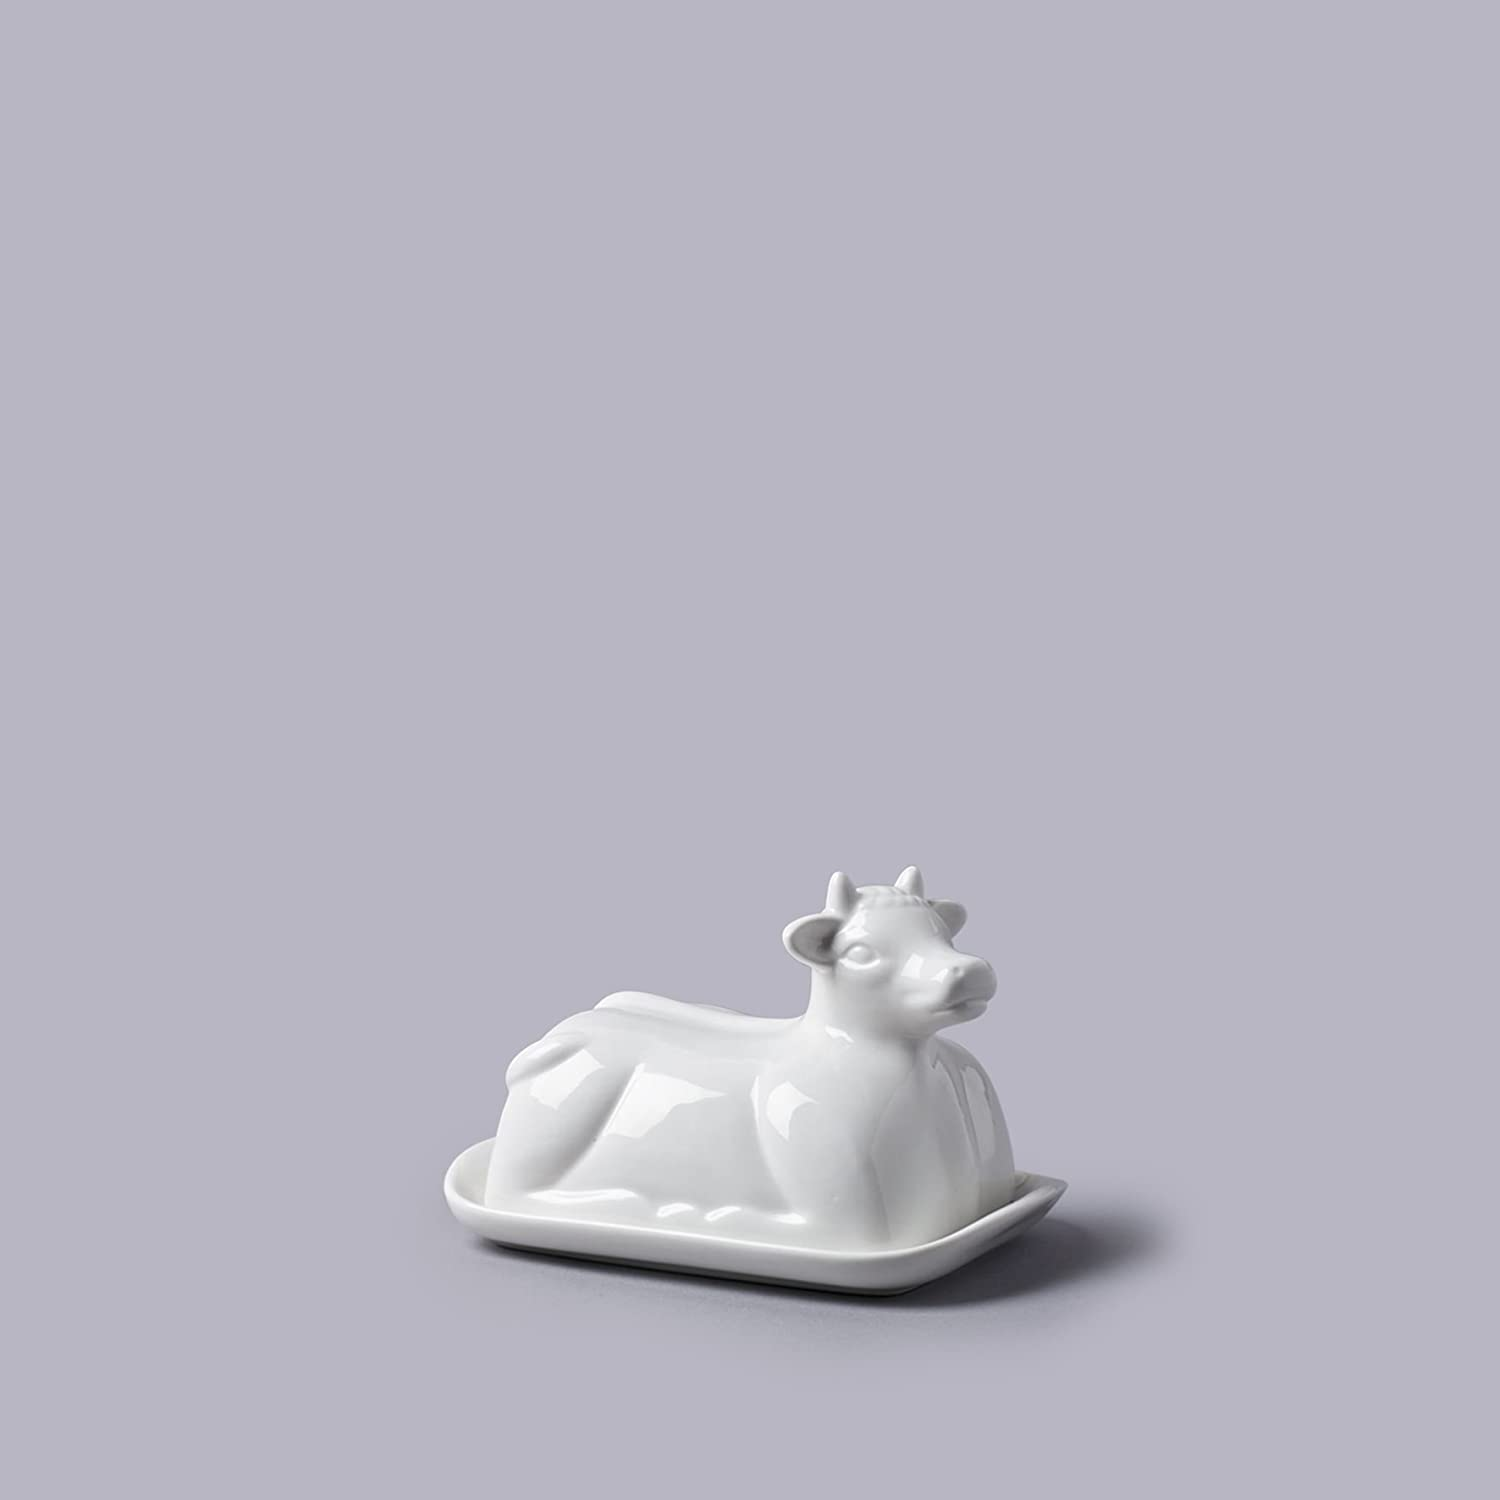 Cow Themed White Ceramic Butter Dish (19x14x7cm)